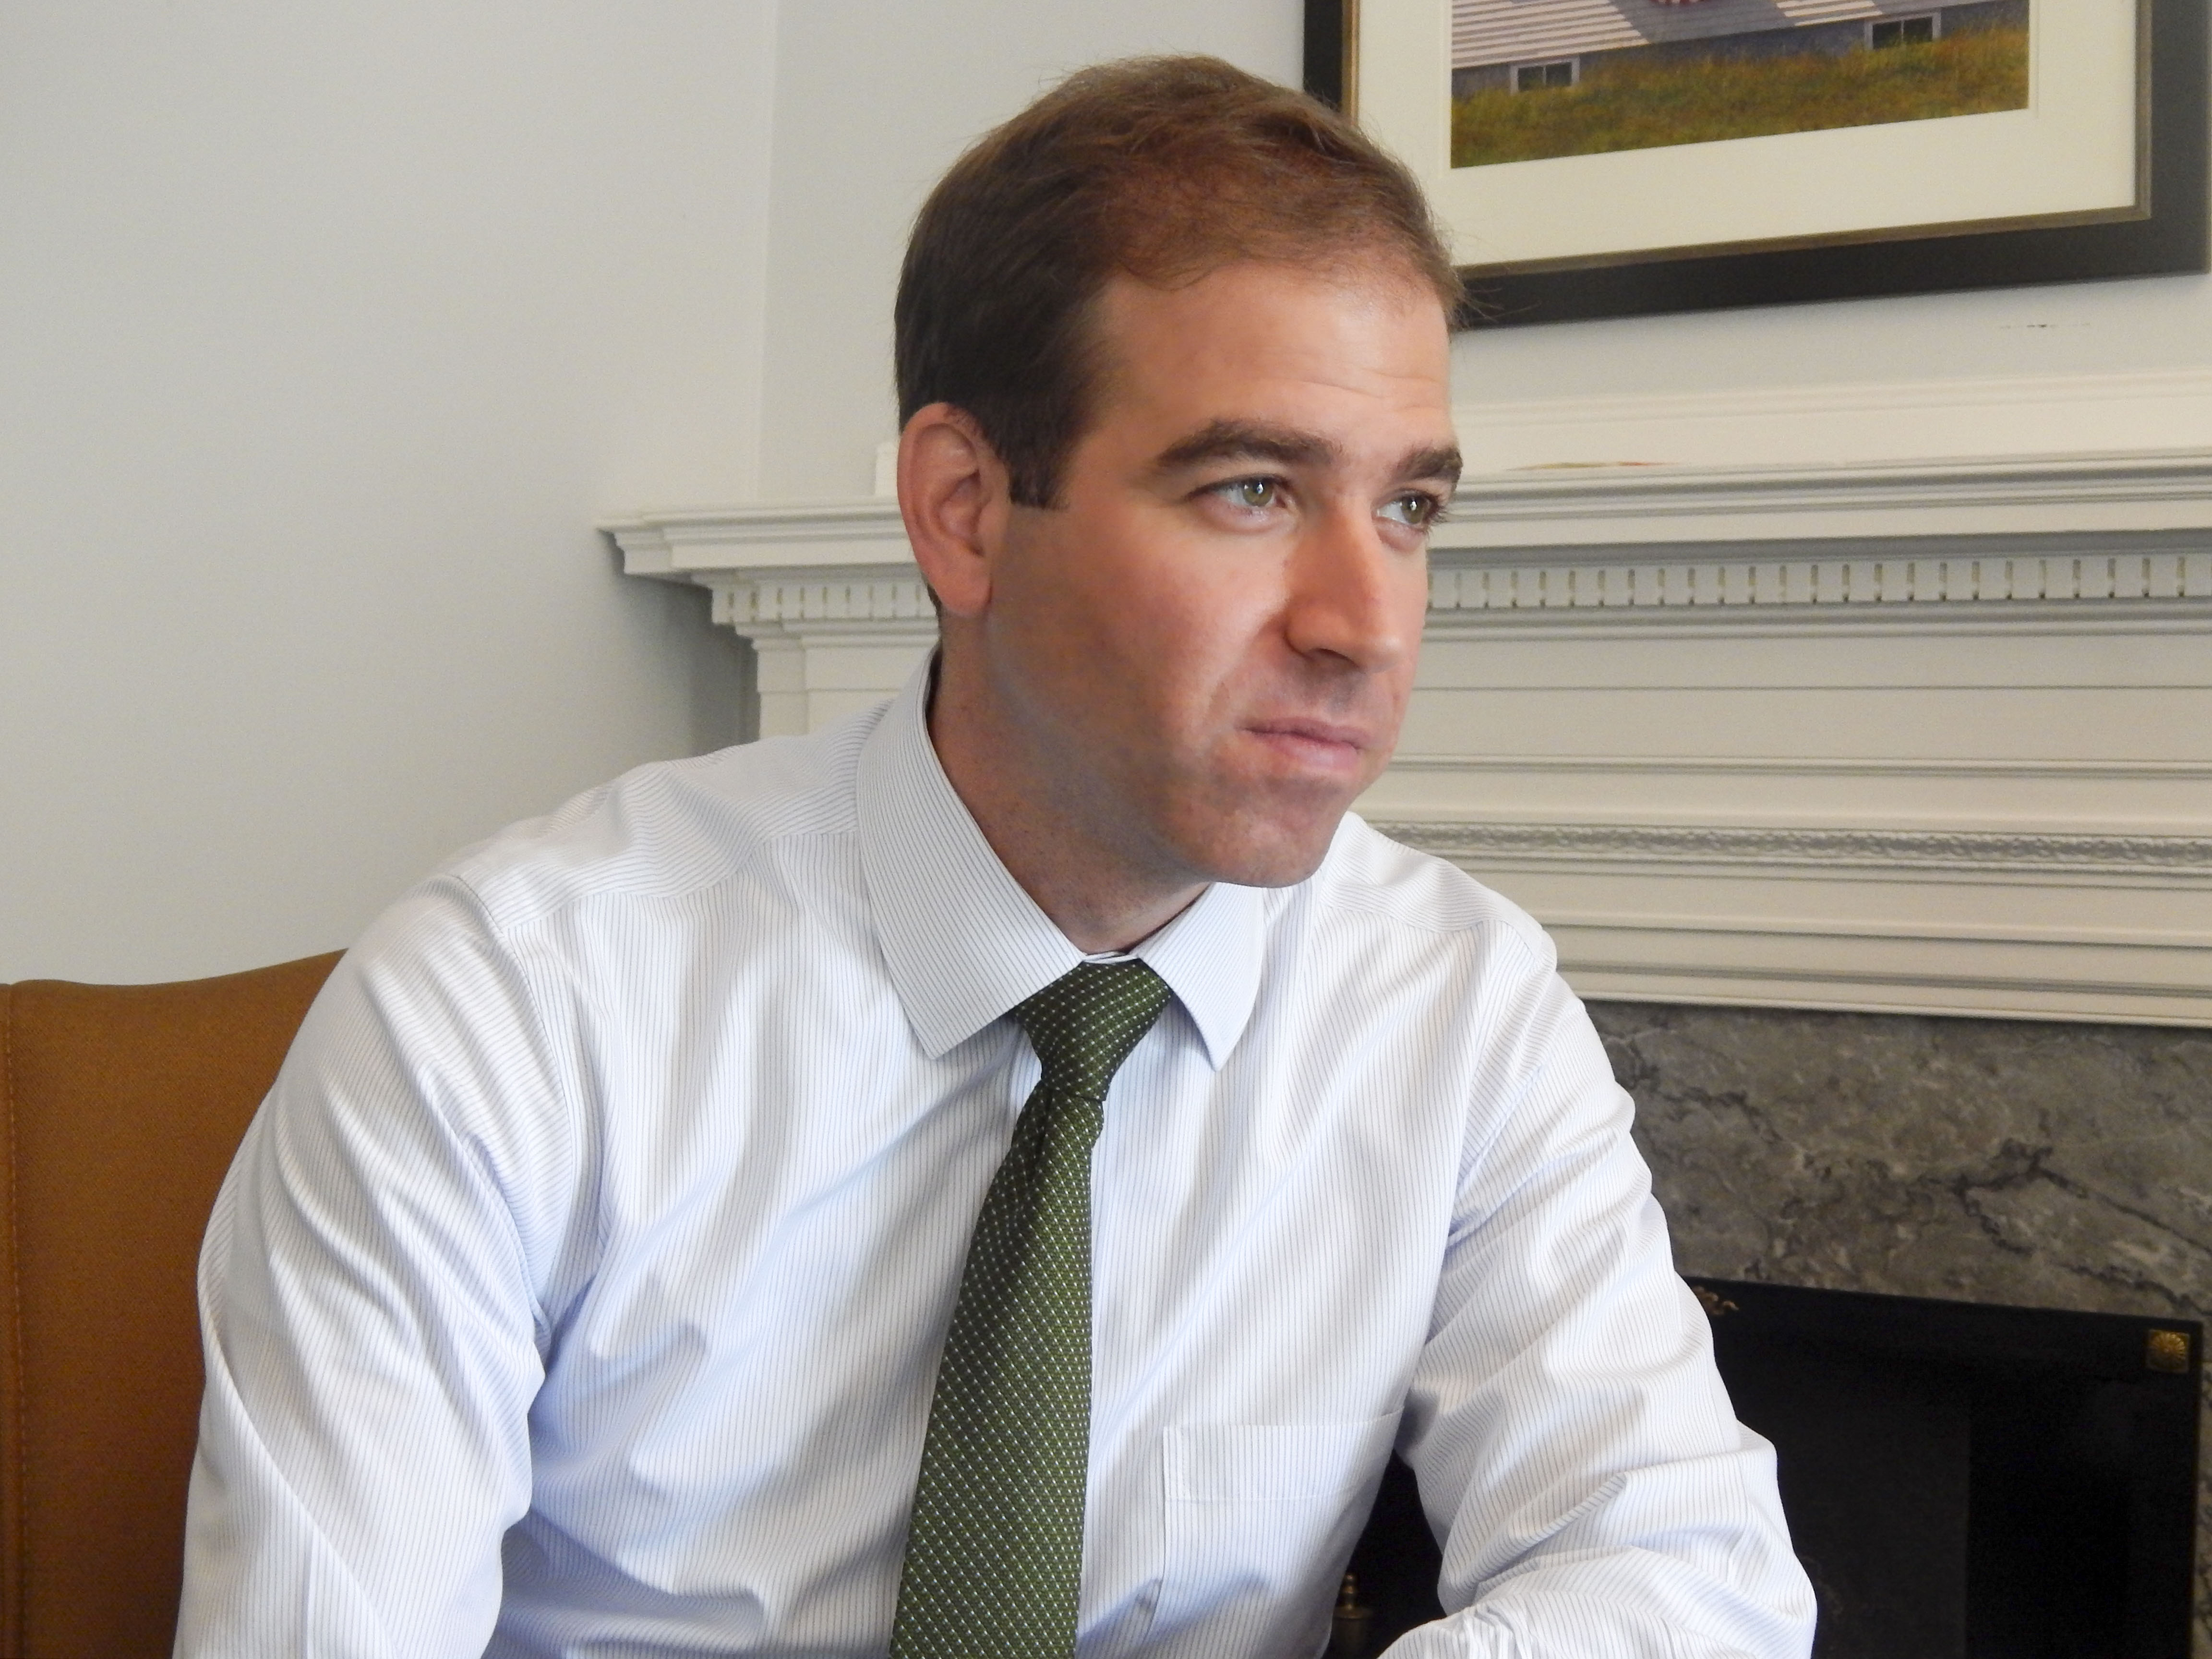 Bronin: Hartford faces insolvency within 60 days